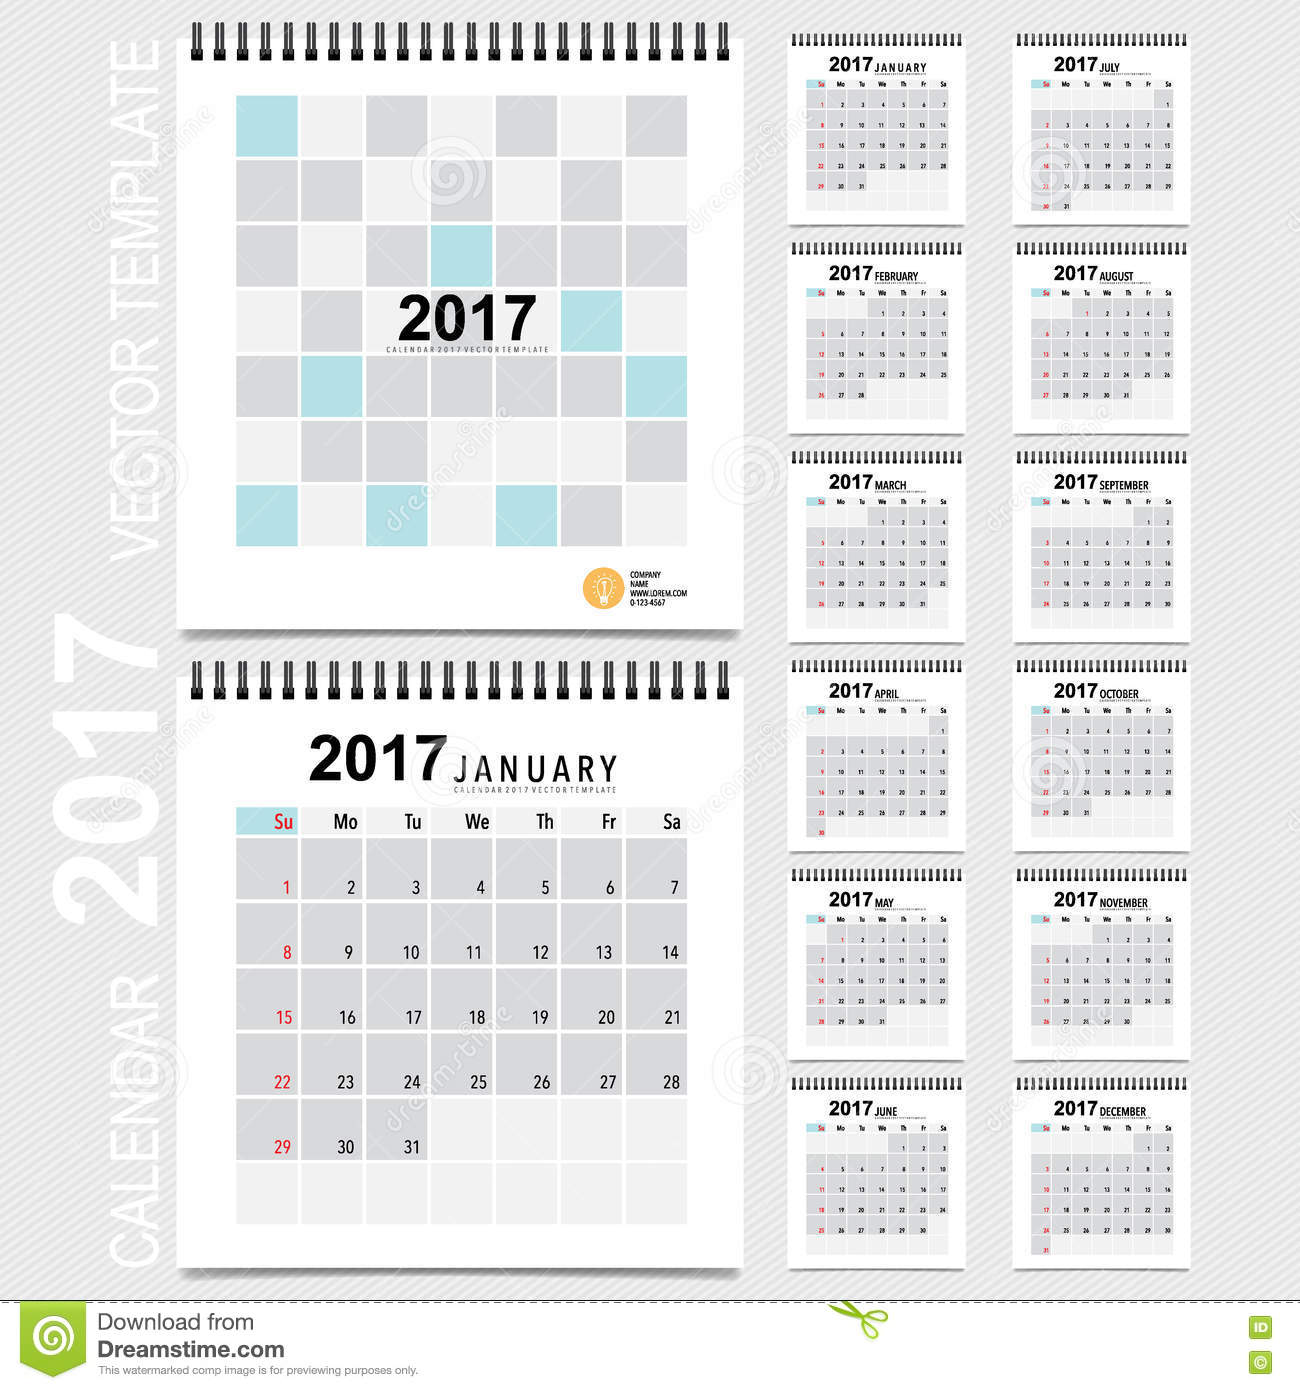 2017 may planner design royalty free stock image for Dreams by design planner